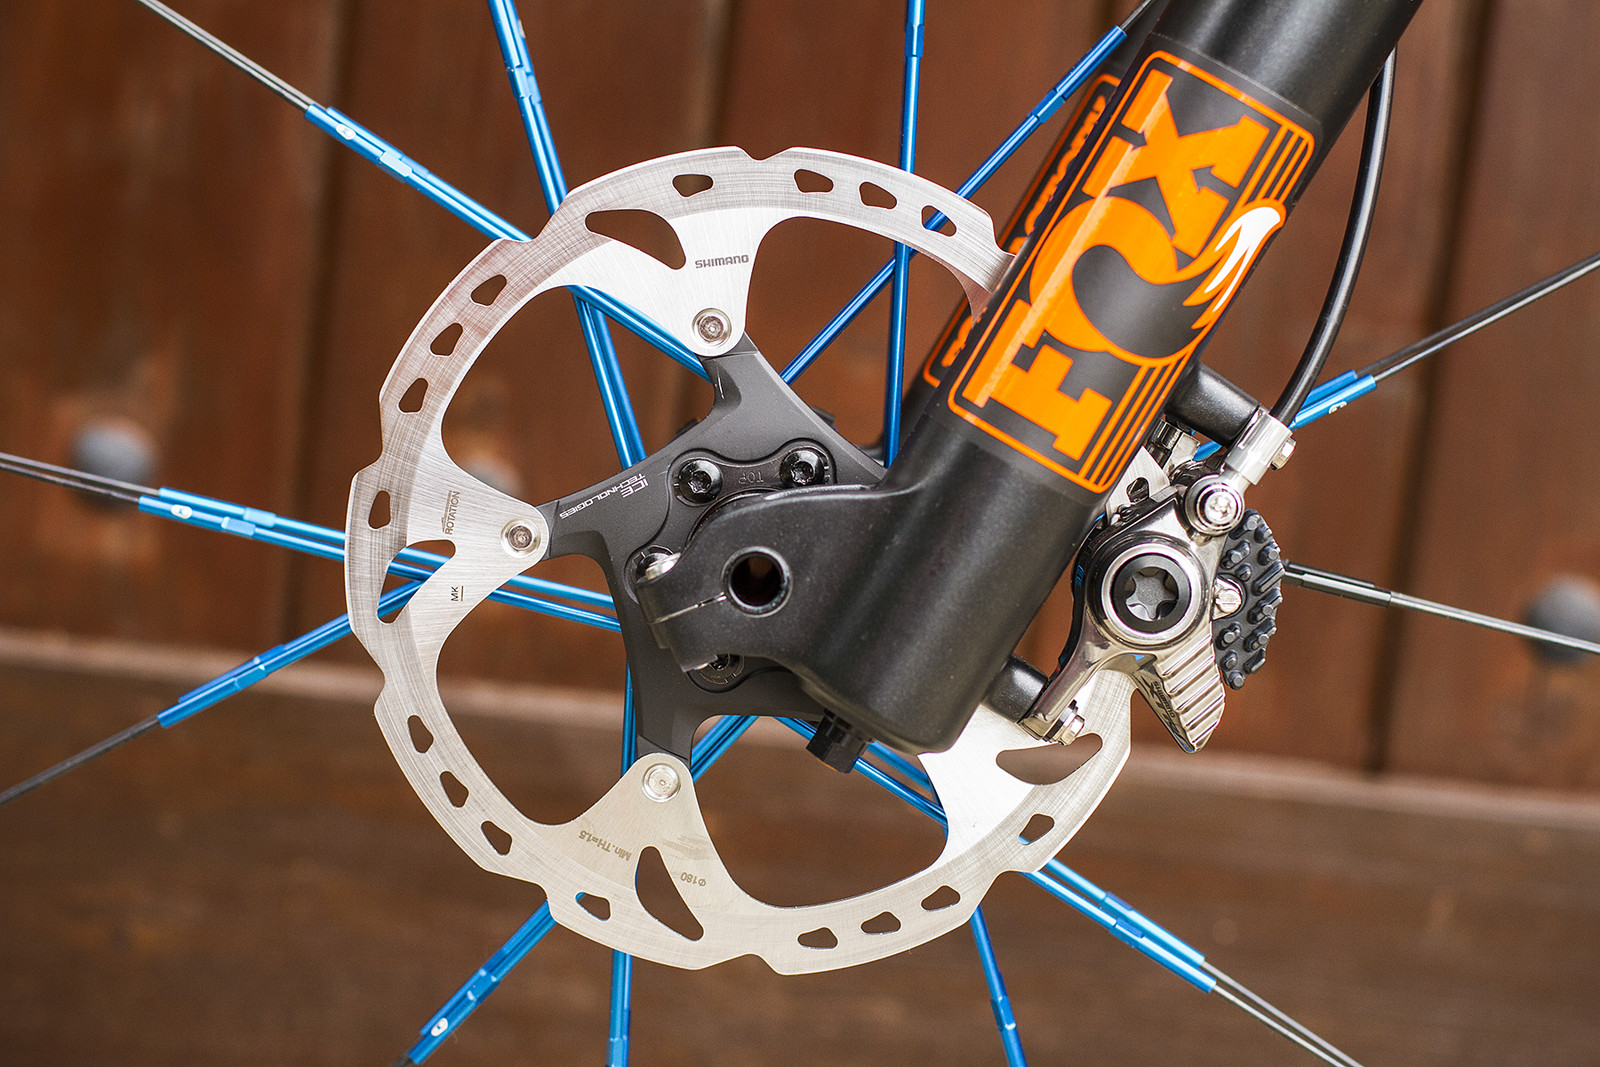 Shimano XTR Front Brake with 180mm Rotor for Hans Rey - Legend Bike Check: Hans Rey's GT Force X Pro - Mountain Biking Pictures - Vital MTB